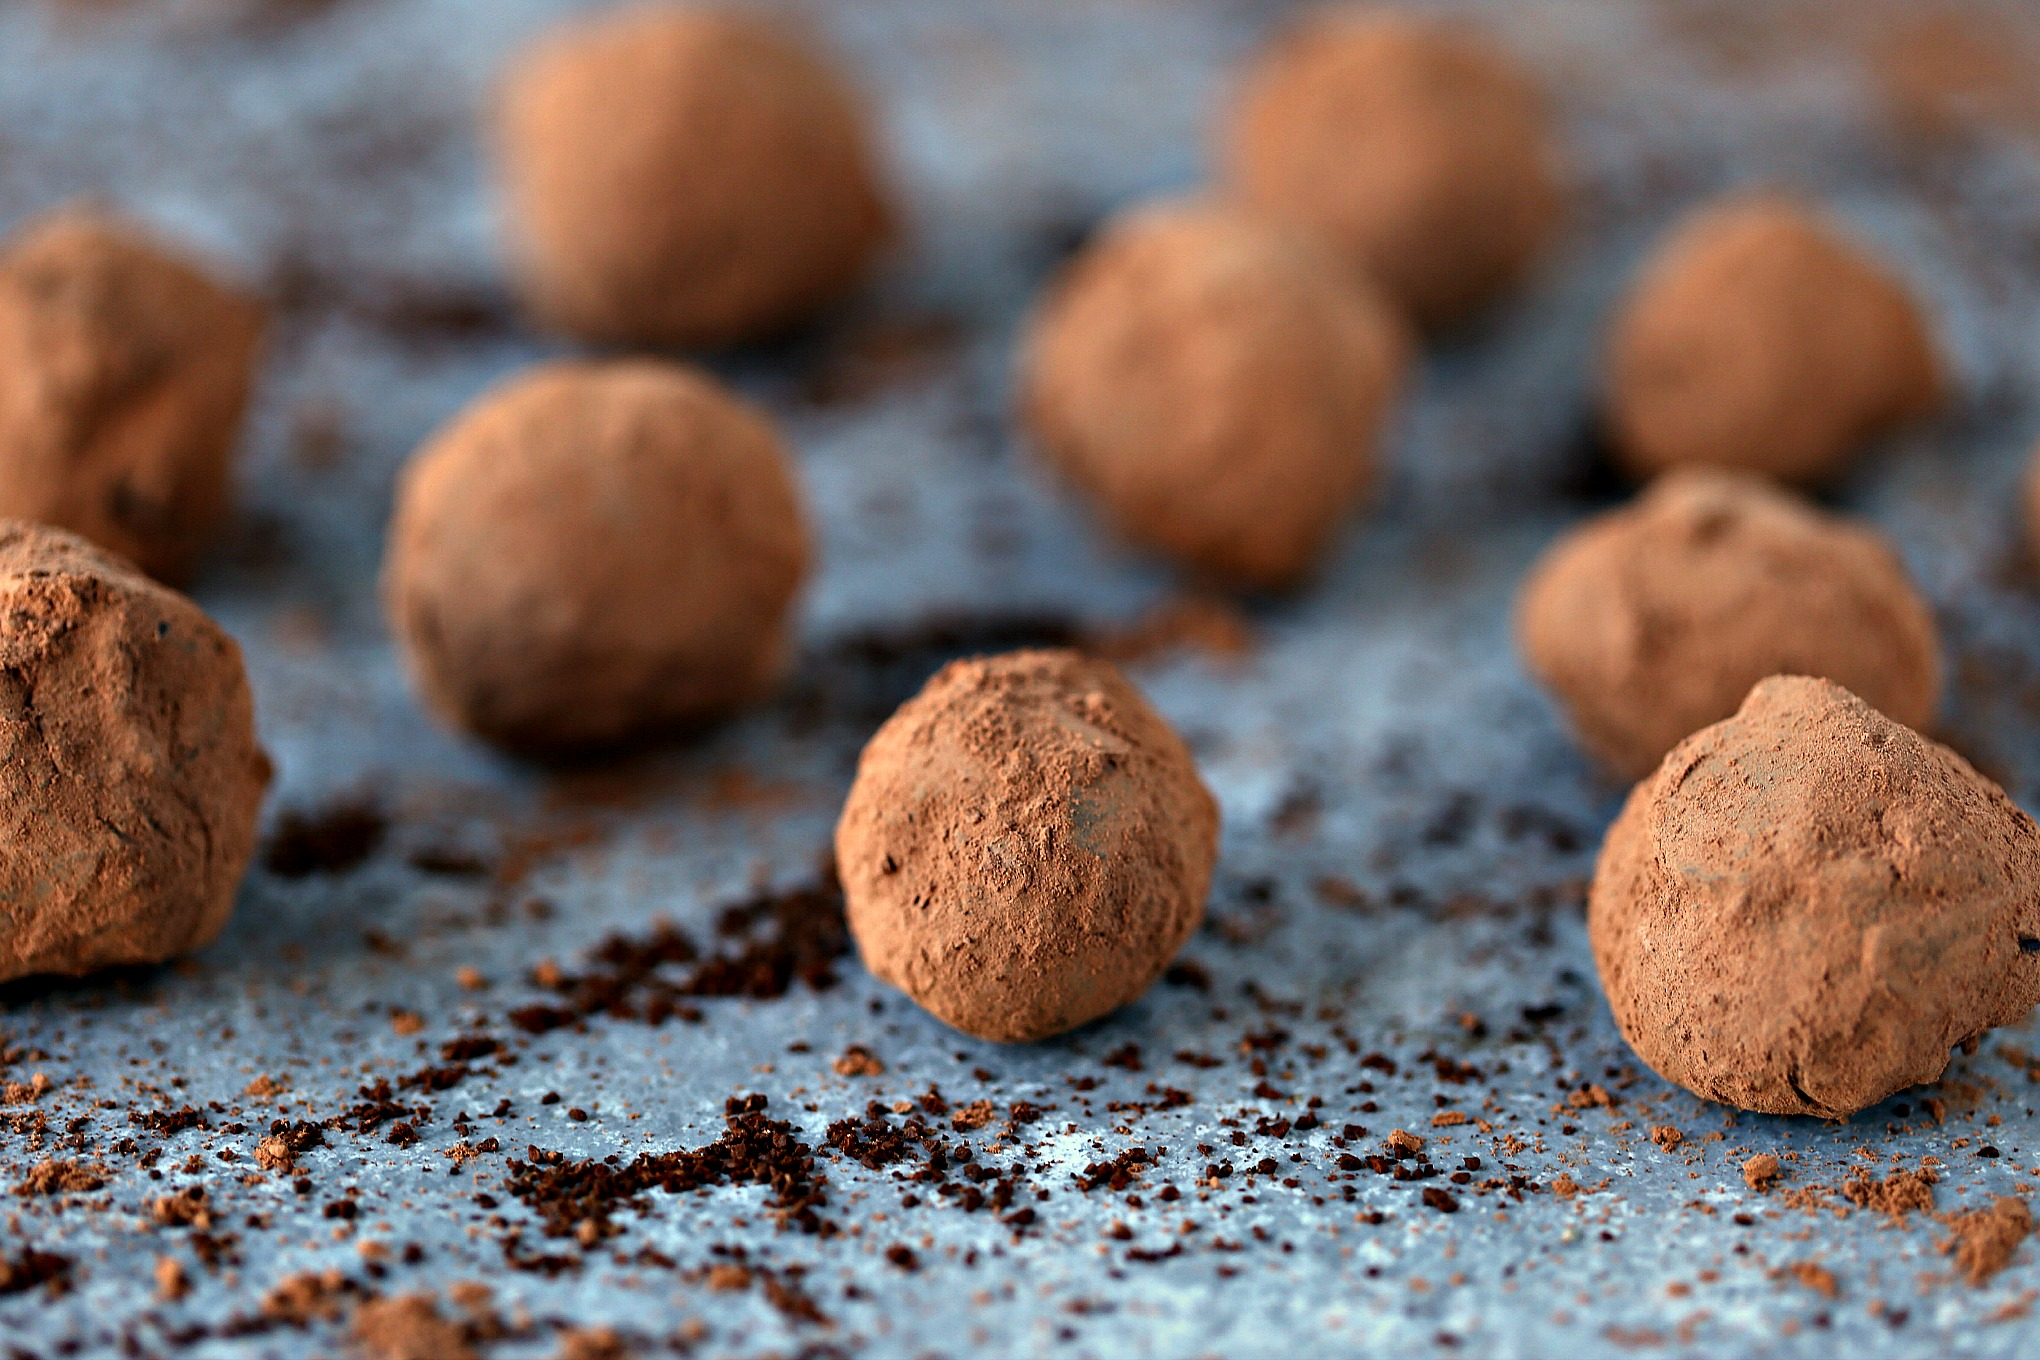 Chocolate Coffee Truffles from cravingsofalunatic.com- These Chocolate Coffee Truffles use dark chocolate and bulletproof coffee for an elevated taste. They are little spheres of chocolate and coffee happiness. Mocha lovers unite.